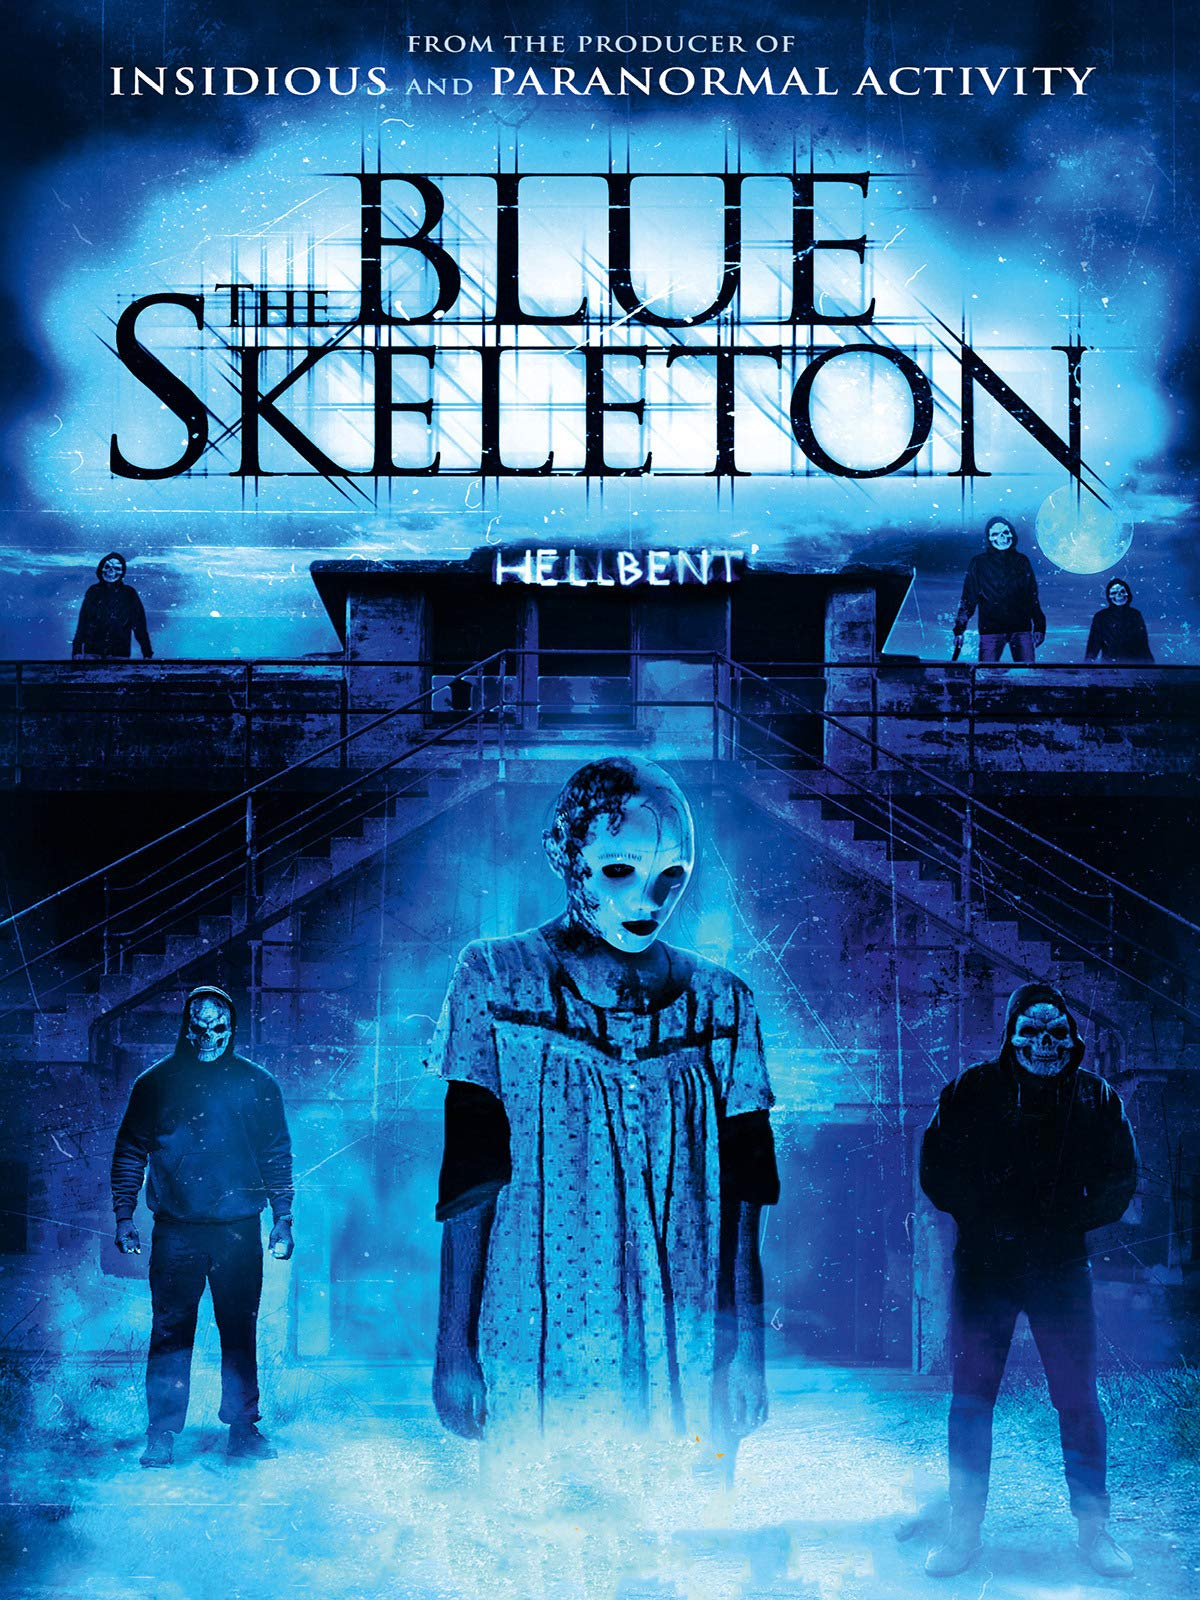 The Blue Skeleton